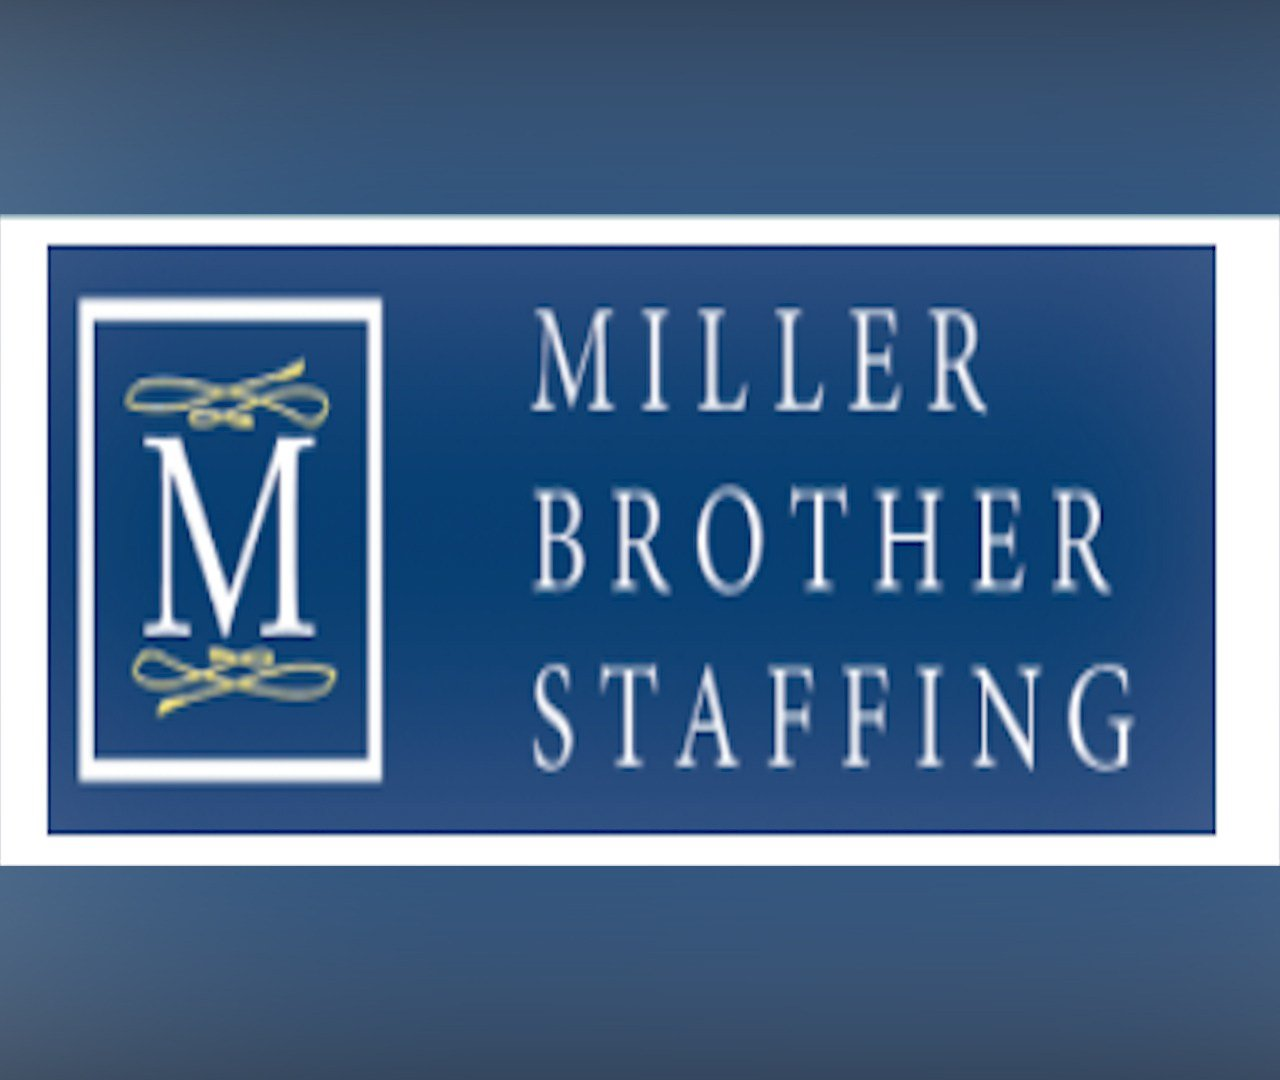 Miller Brother Staffing Solutions